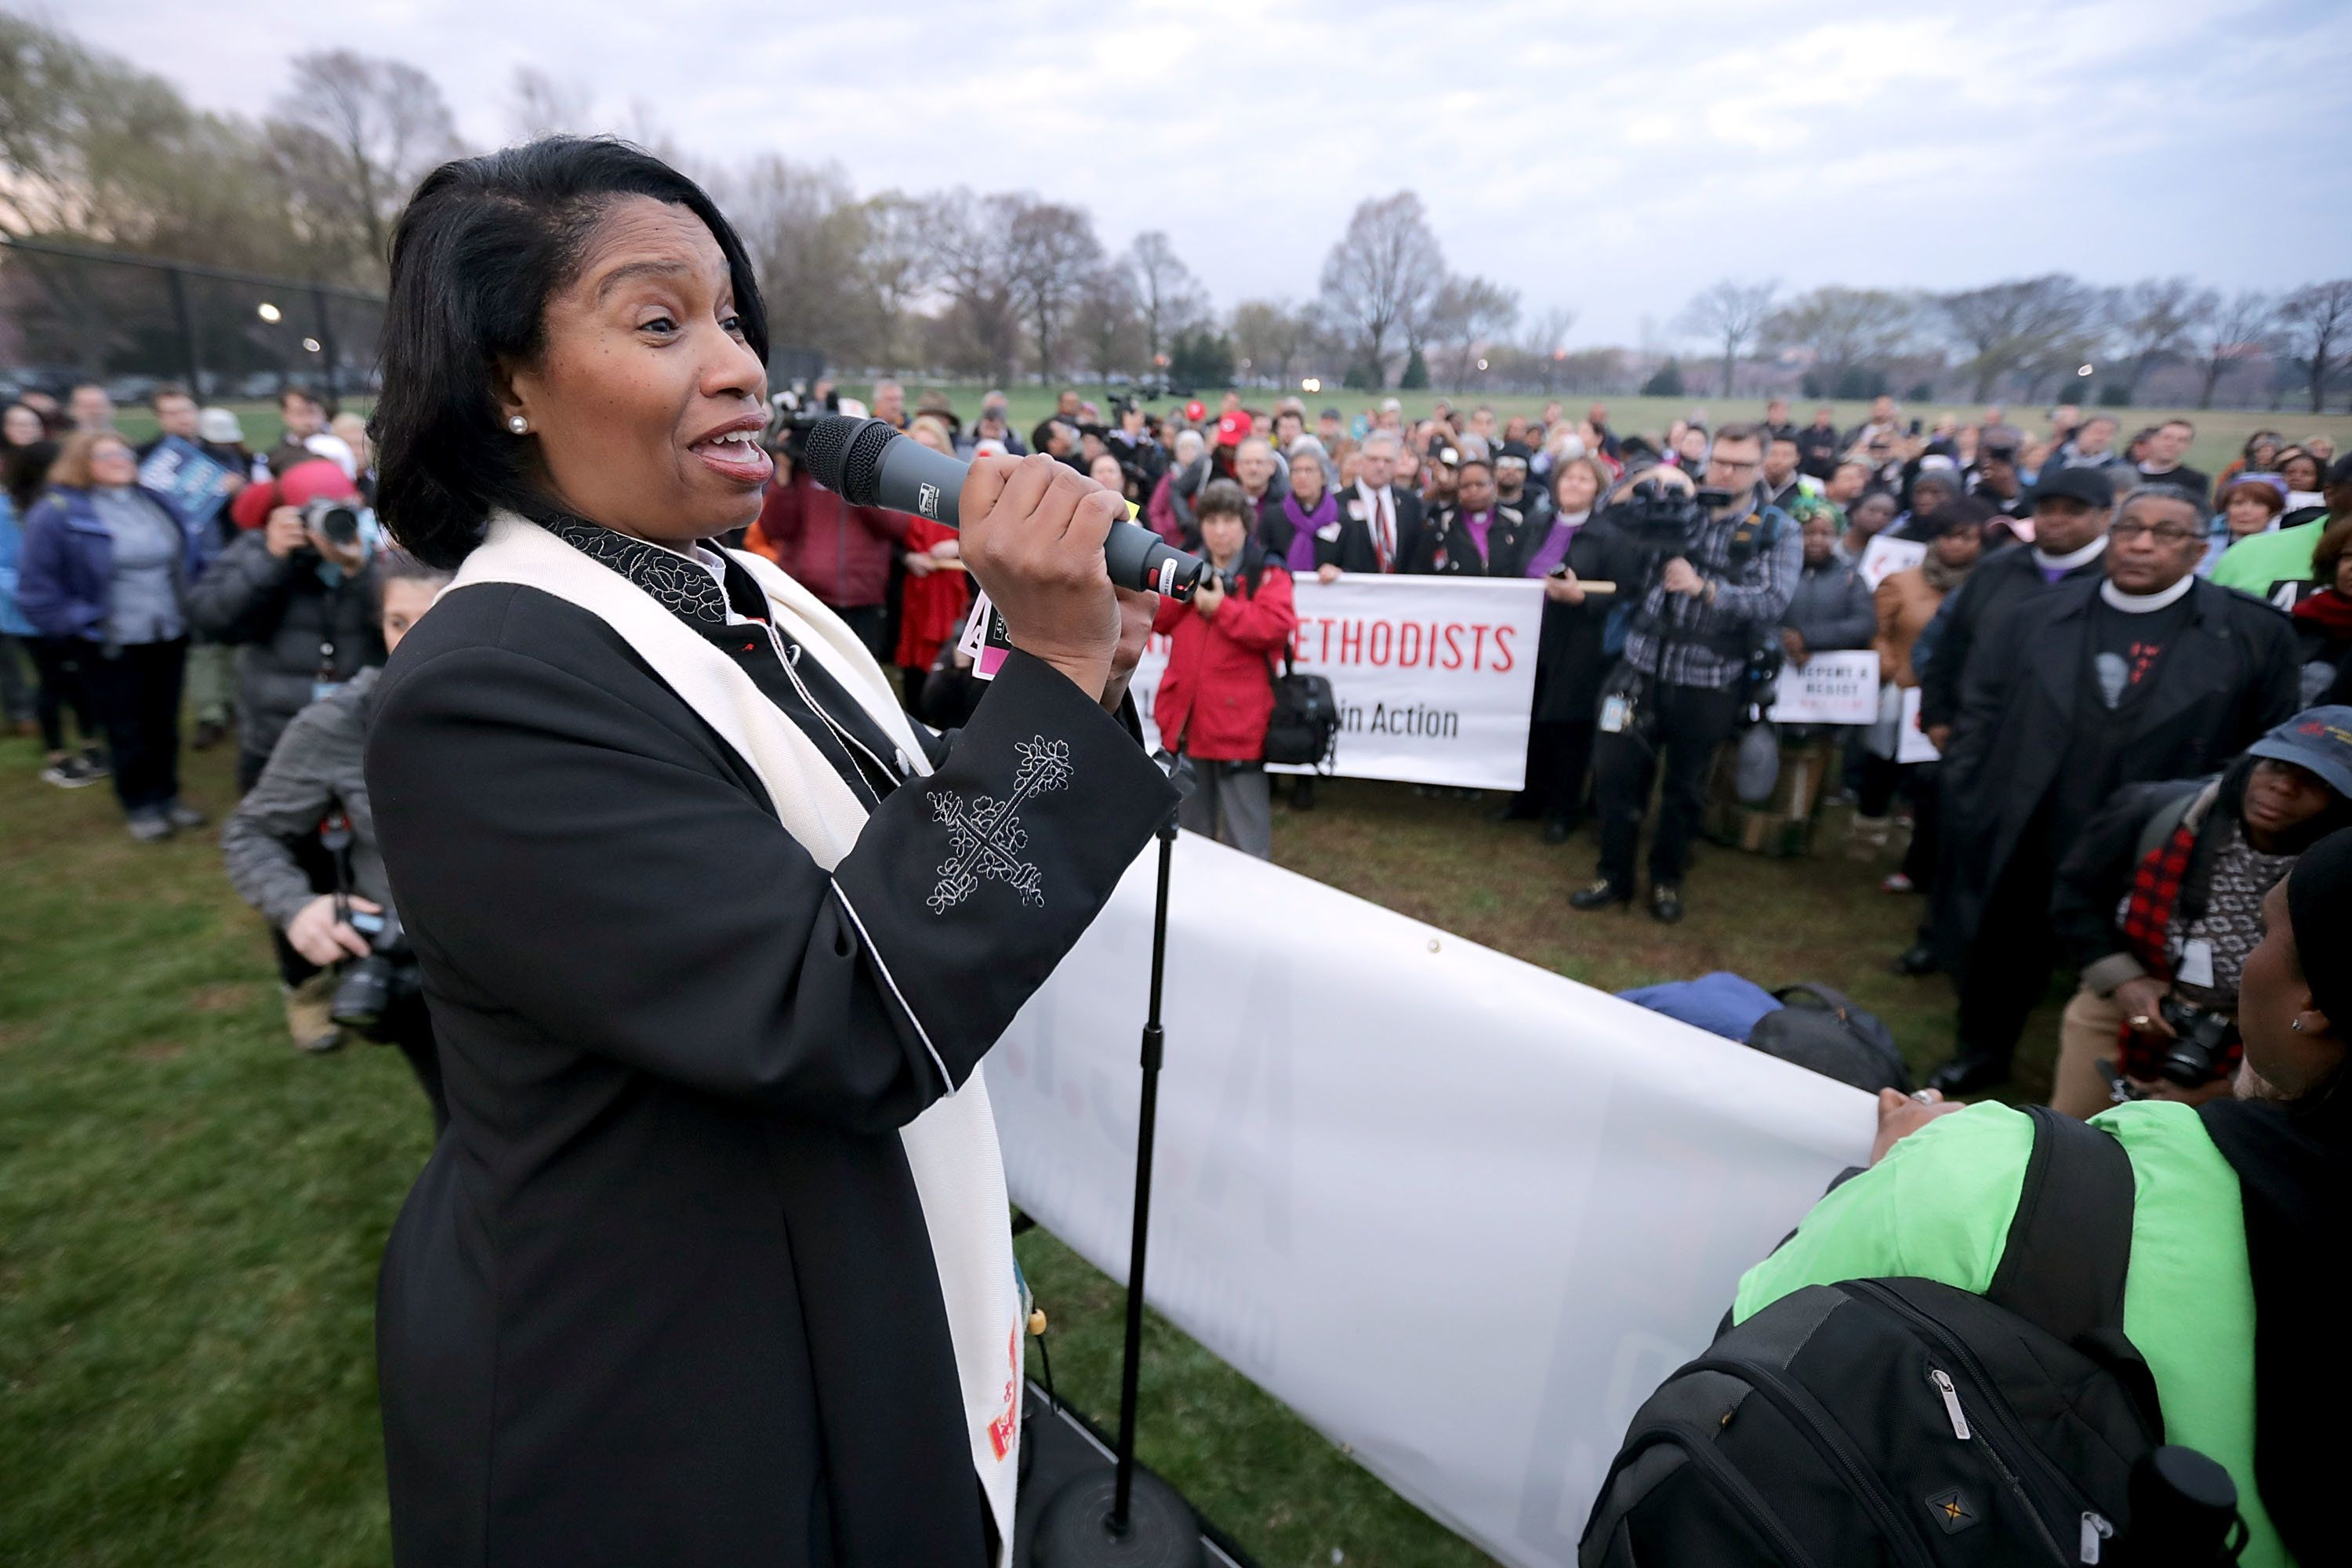 WASHINGTON, DC - APRIL 04:  The Rev. Dr. Leslie Copeland Tune addresses faith leaders as they prepare for a silent march from the Dr. Martin Luther King Jr. Memorial to the National Mall to mark the 50th anniversary of King's assassination April 4, 2018 in Washington, DC. Organized by A.C.T. To End Racism, religious leaders and others gathered to memorialize the day that Nobel Peace Prize and American civil rights leader King was killed while supporting a sanitation workers strike in Memphis, Tennessee.  (Photo by Chip Somodevilla/Getty Images)